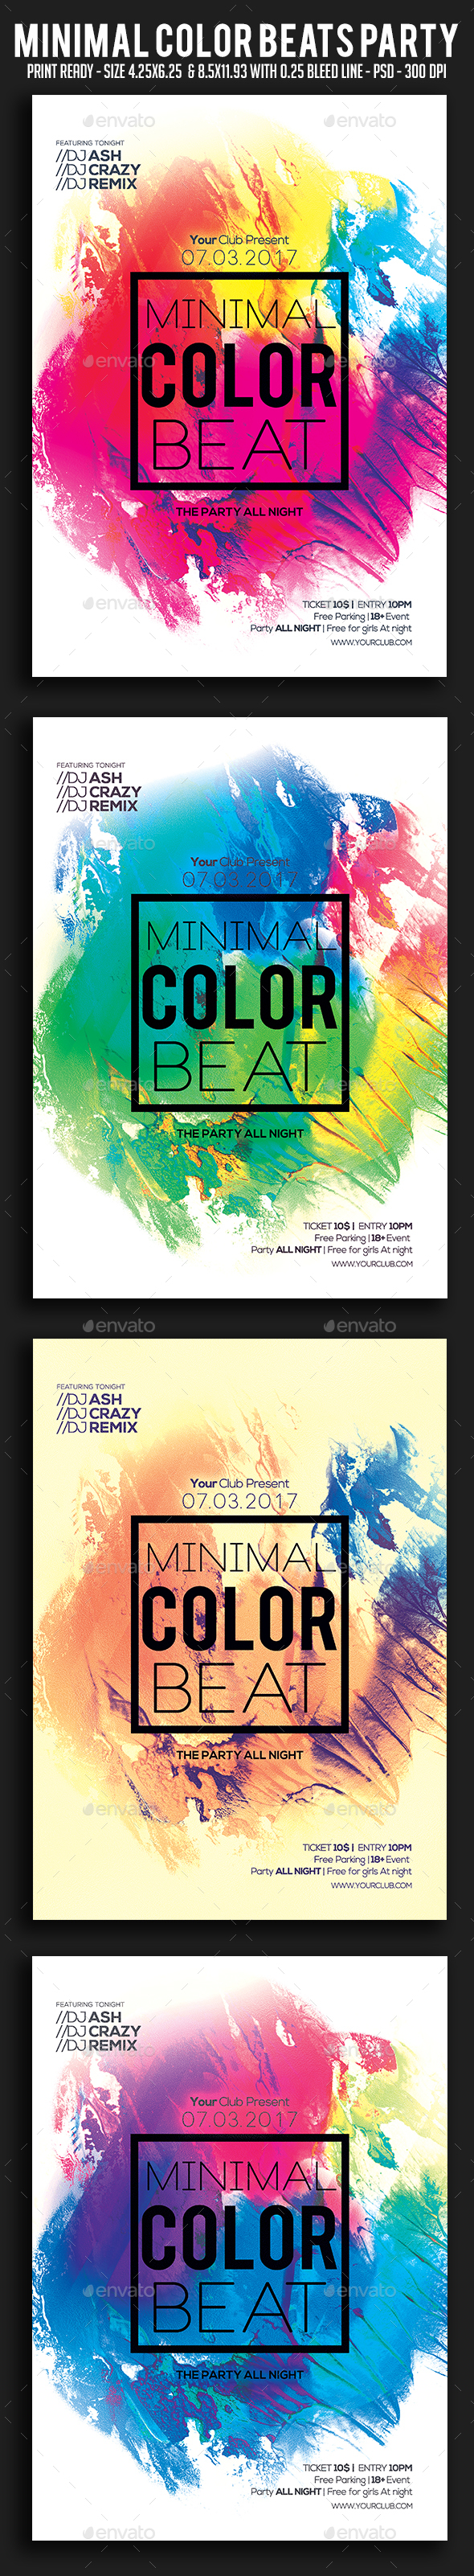 Minimal Color Beats Party Flyer - Clubs & Parties Events